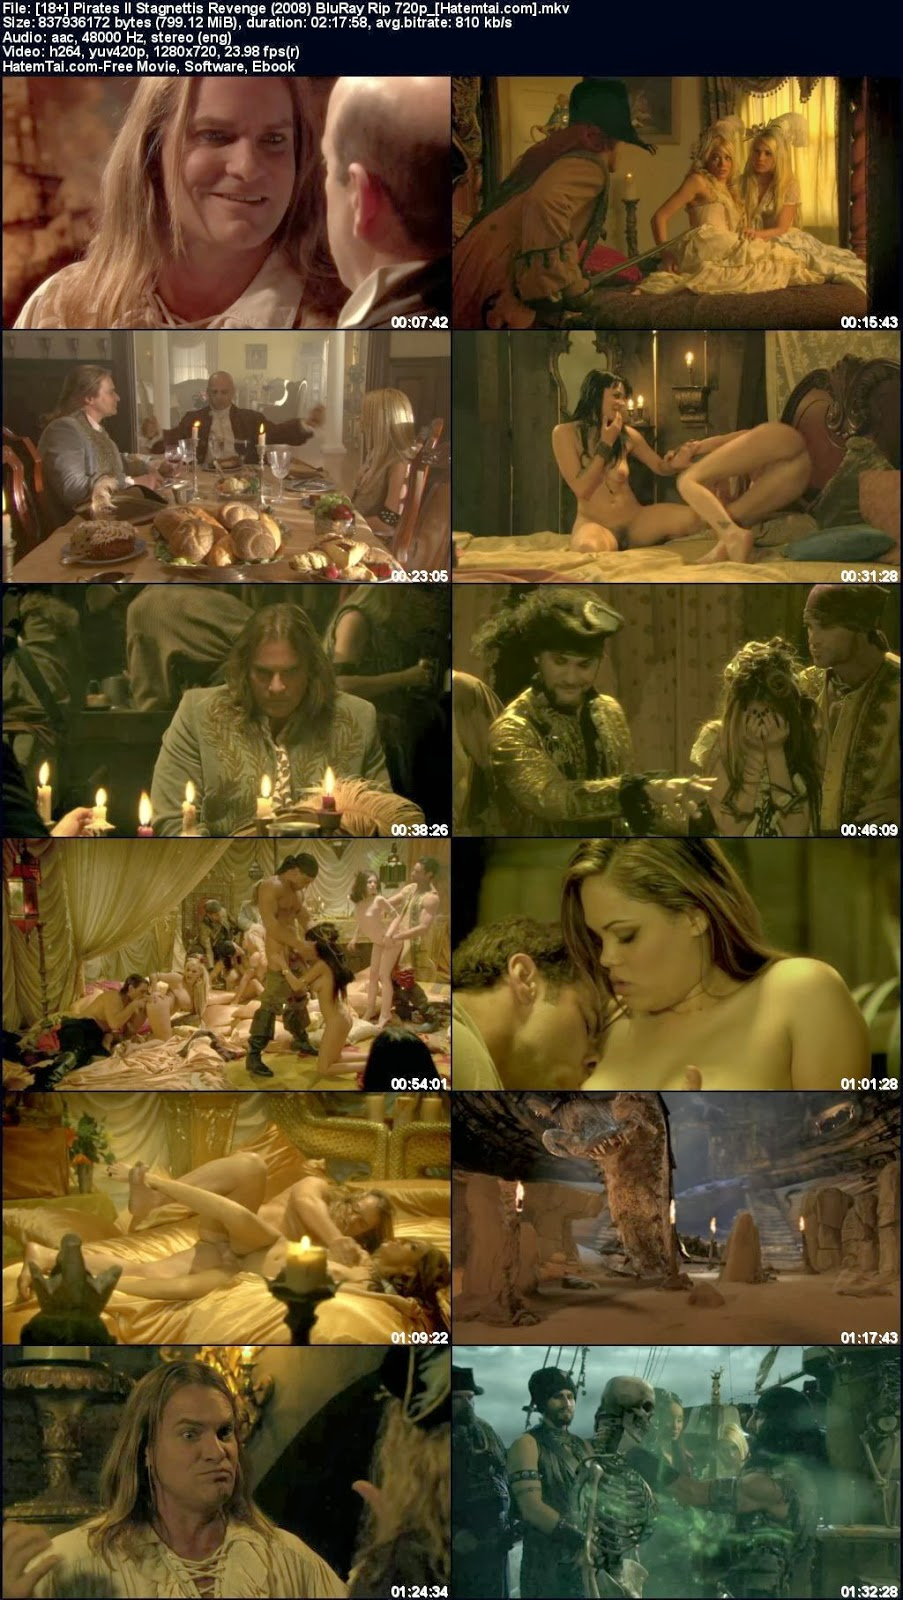 Download video porn pirates pornos film